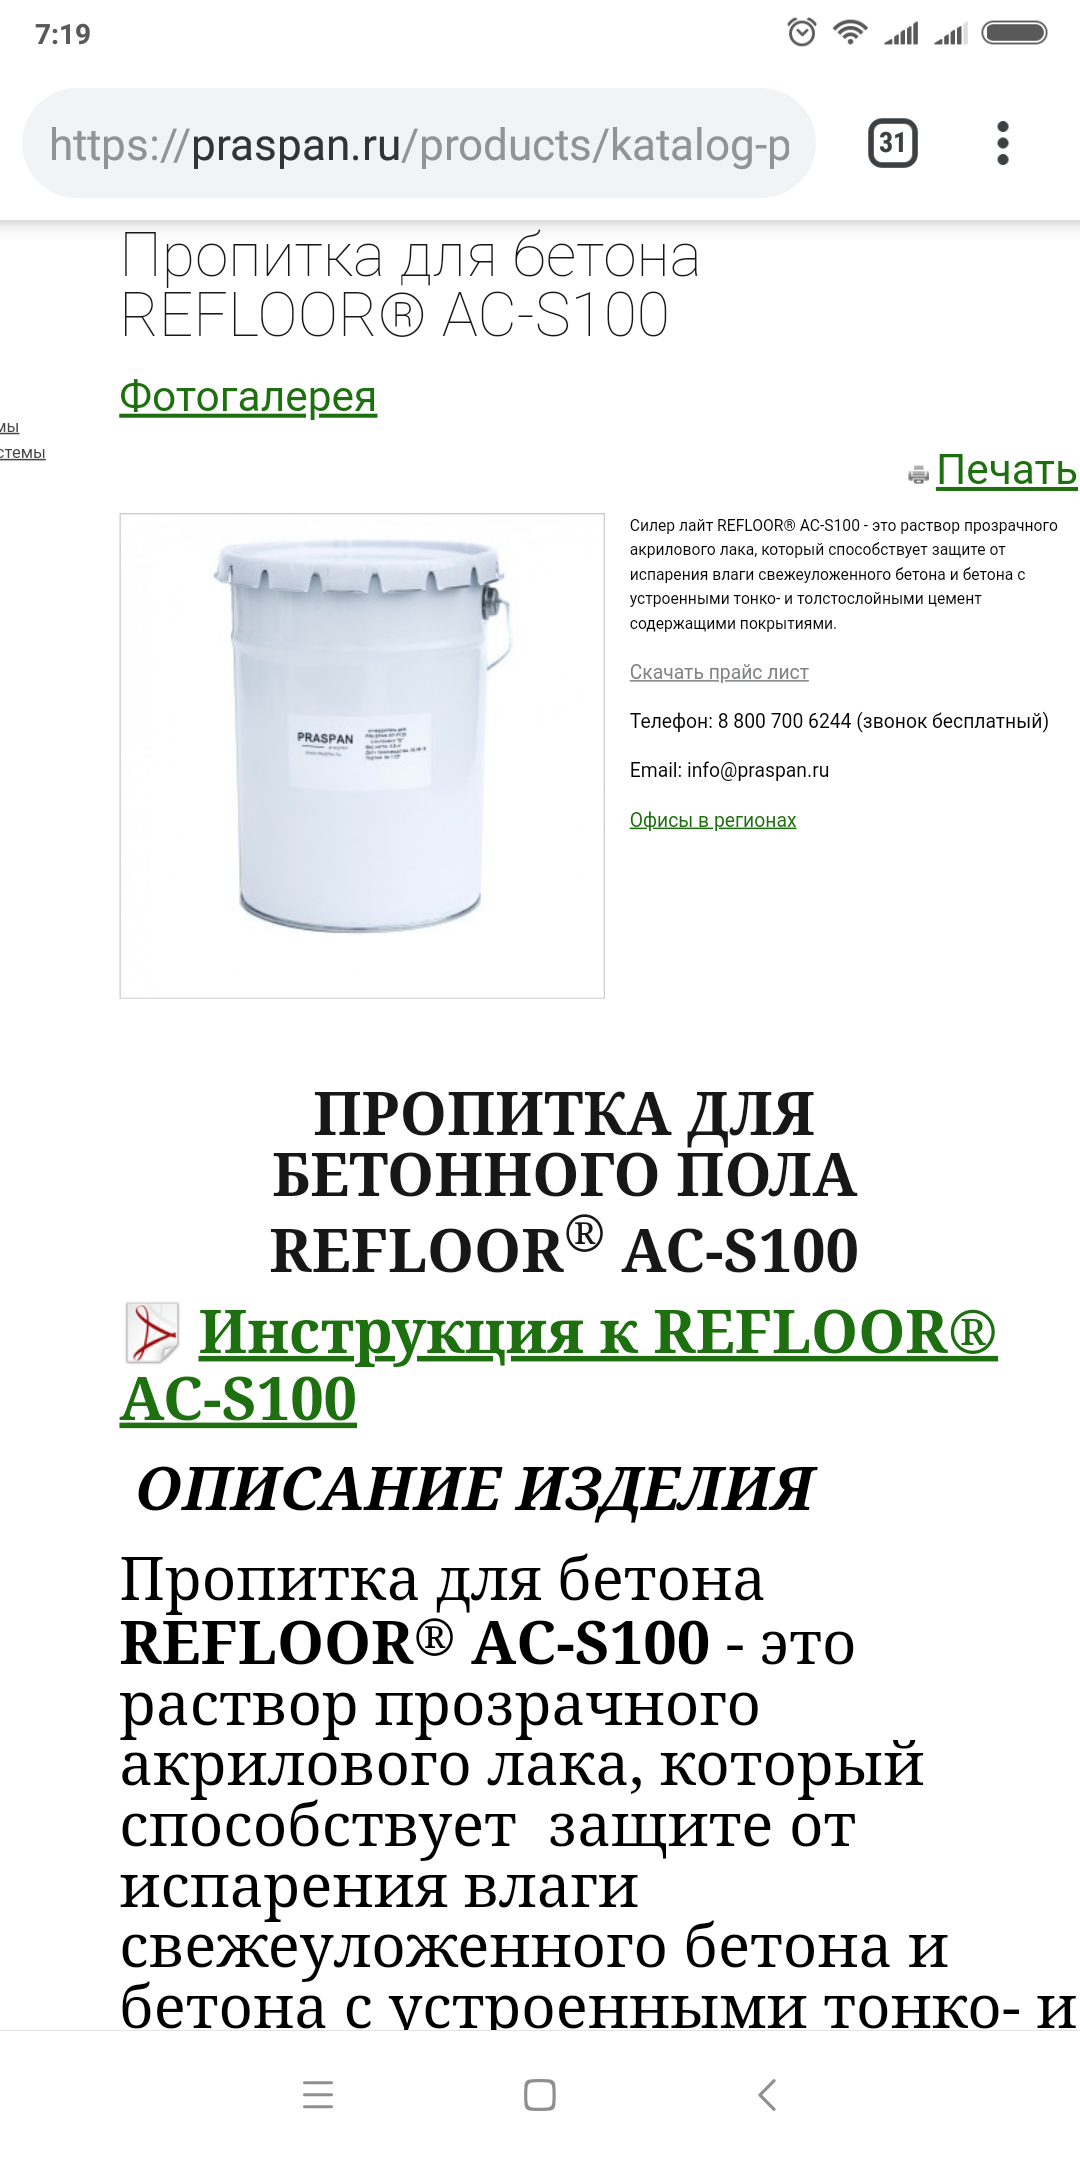 Looking for suppliers of dry mixes for the setup of industrial floors. More precisely, refloor ac-s100.